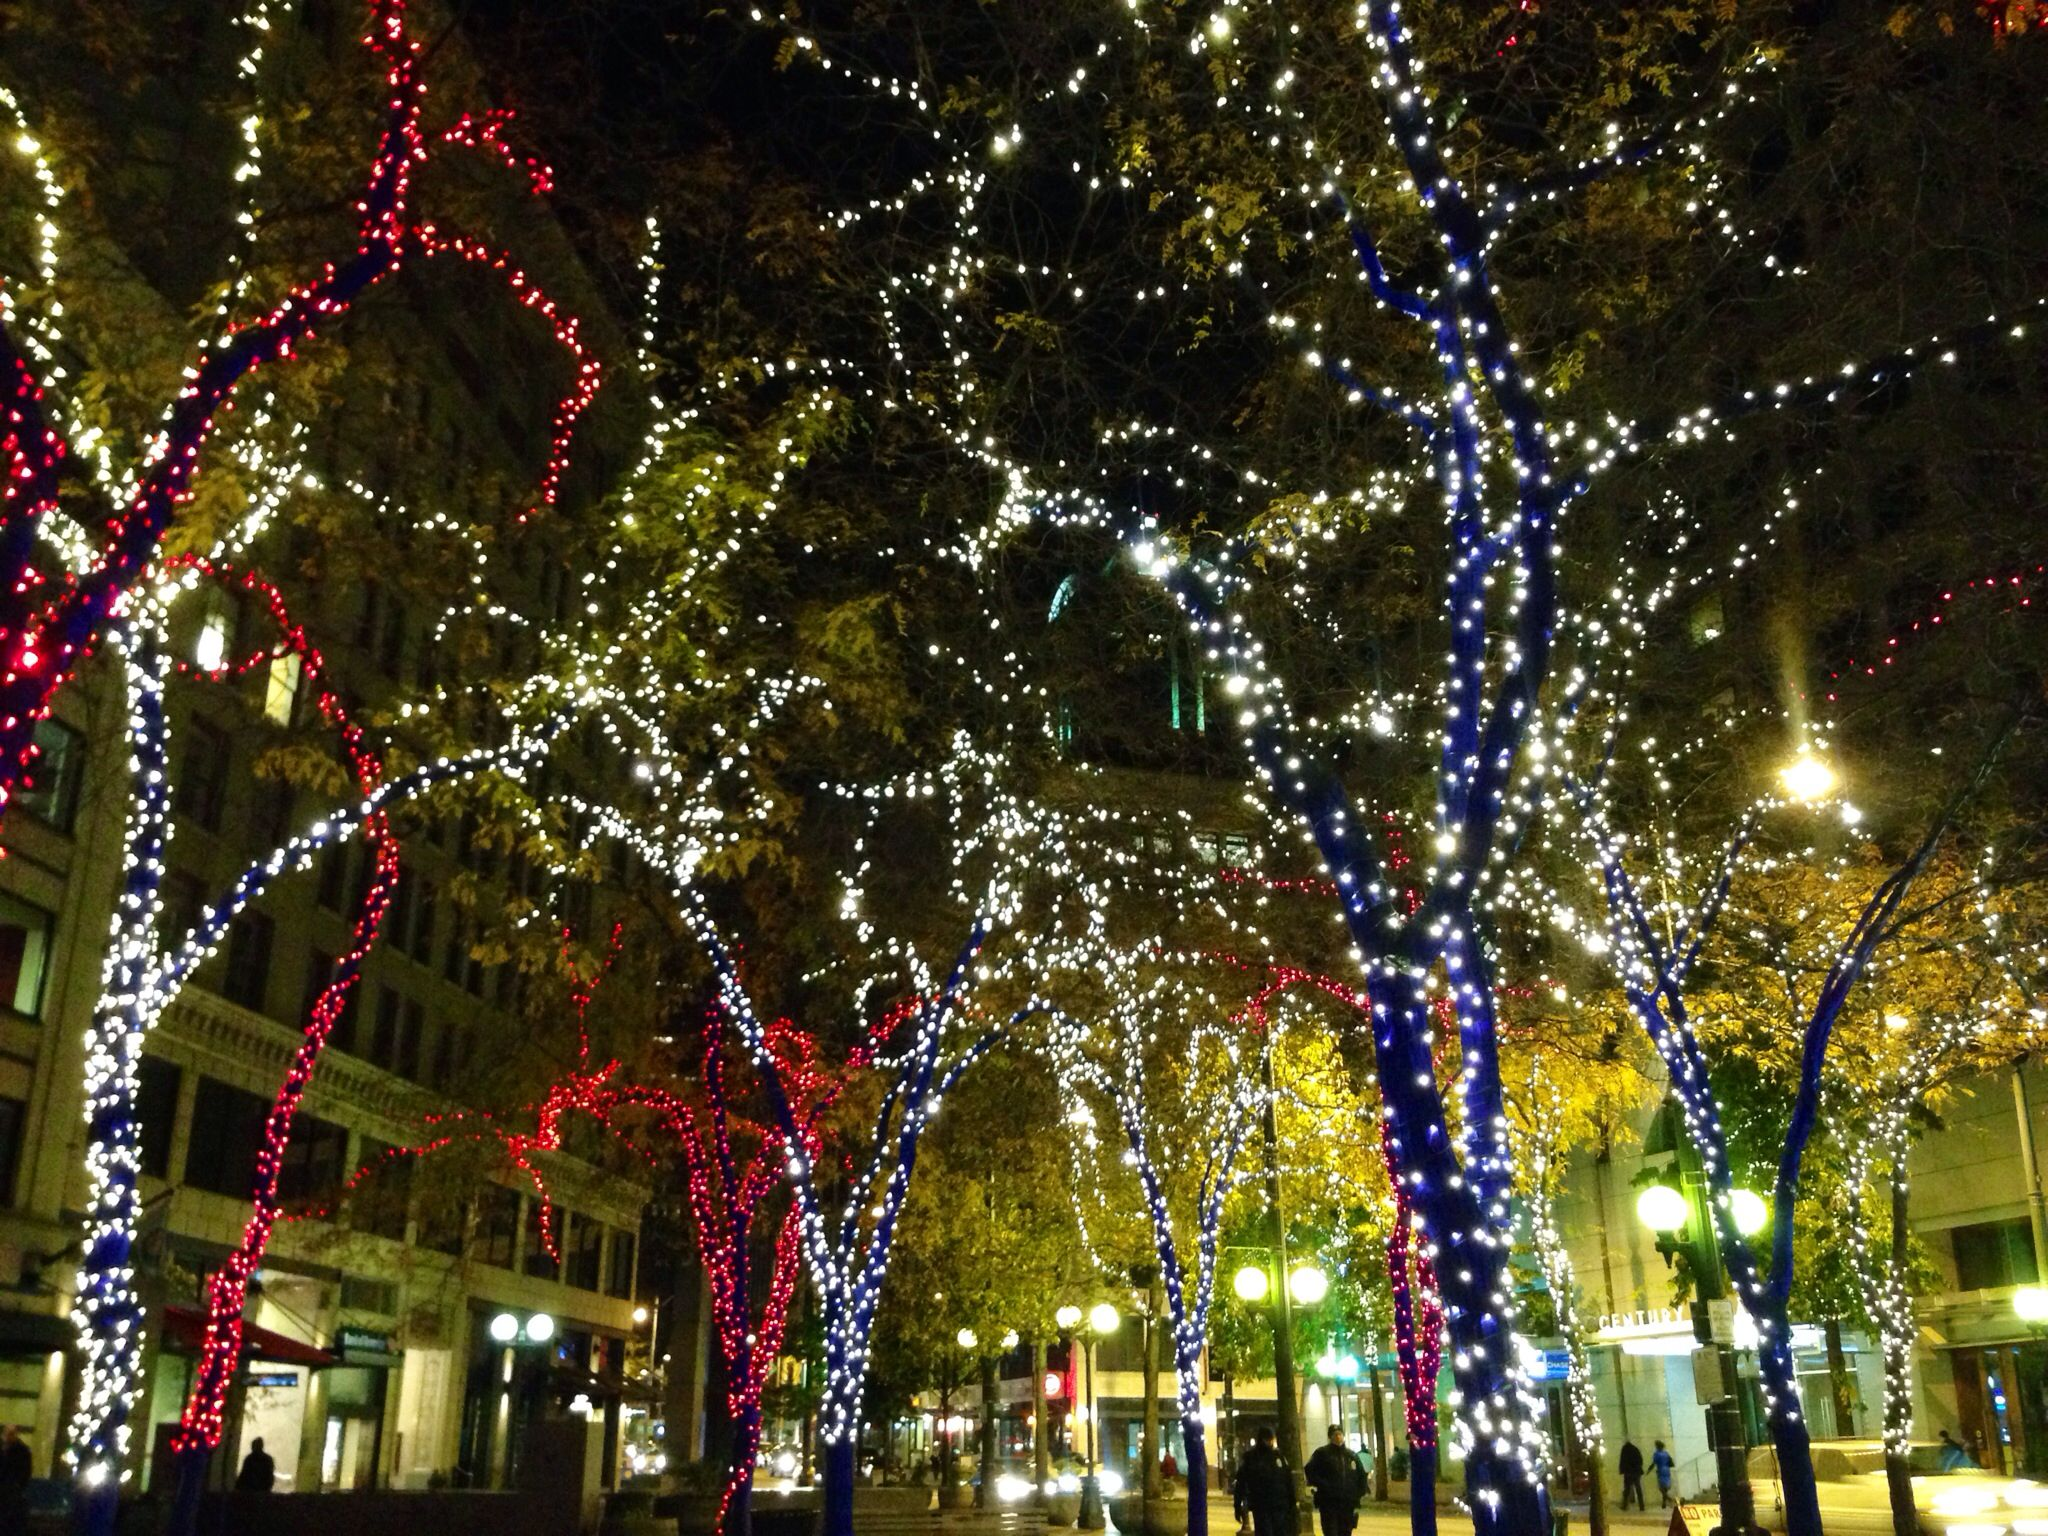 Christmas Lights In Seattle!!! #OurCity